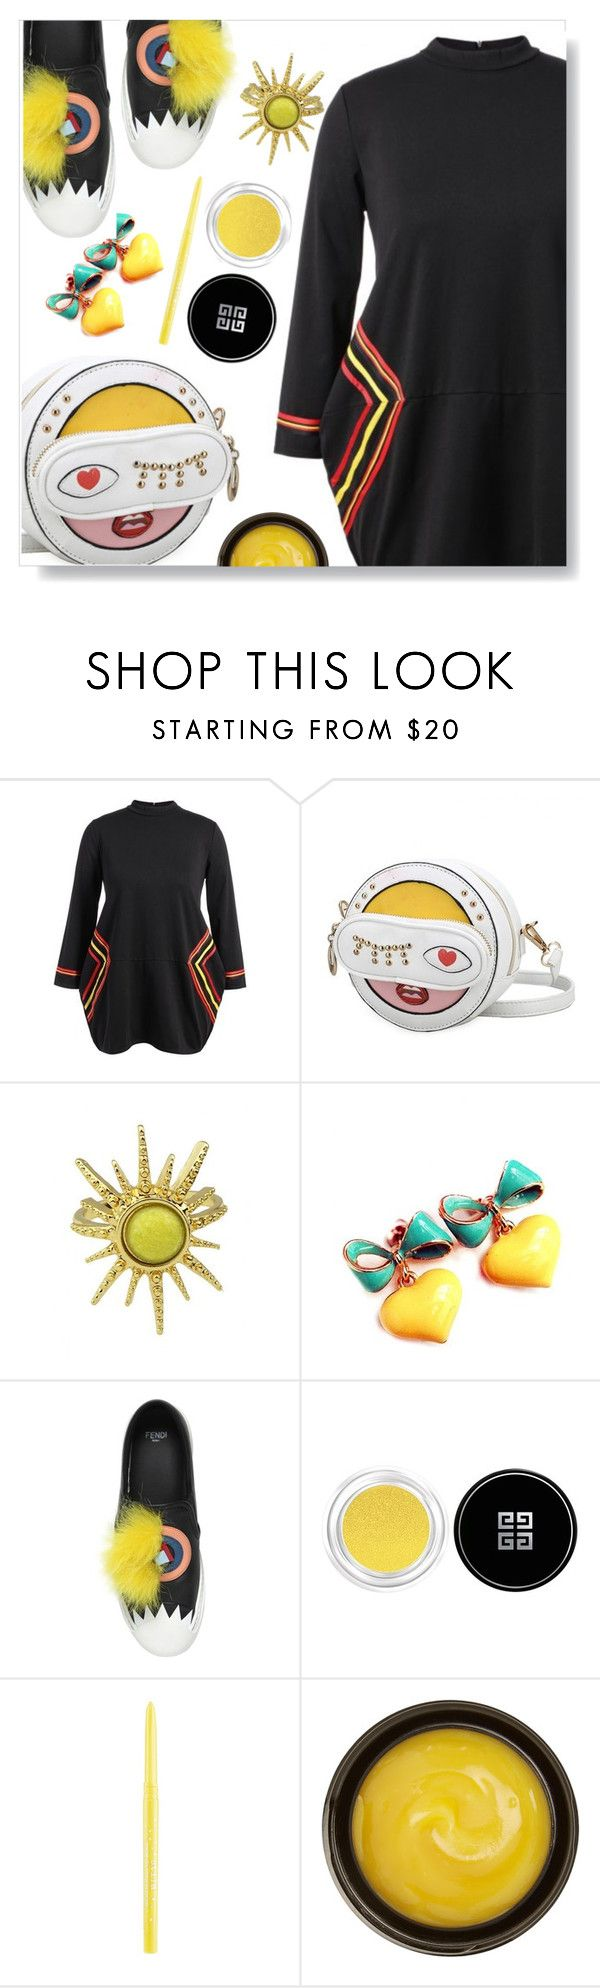 """""""Baggy dress"""" by simona-altobelli ❤ liked on Polyvore featuring Fendi, Givenchy, Stila and de Mamiel"""